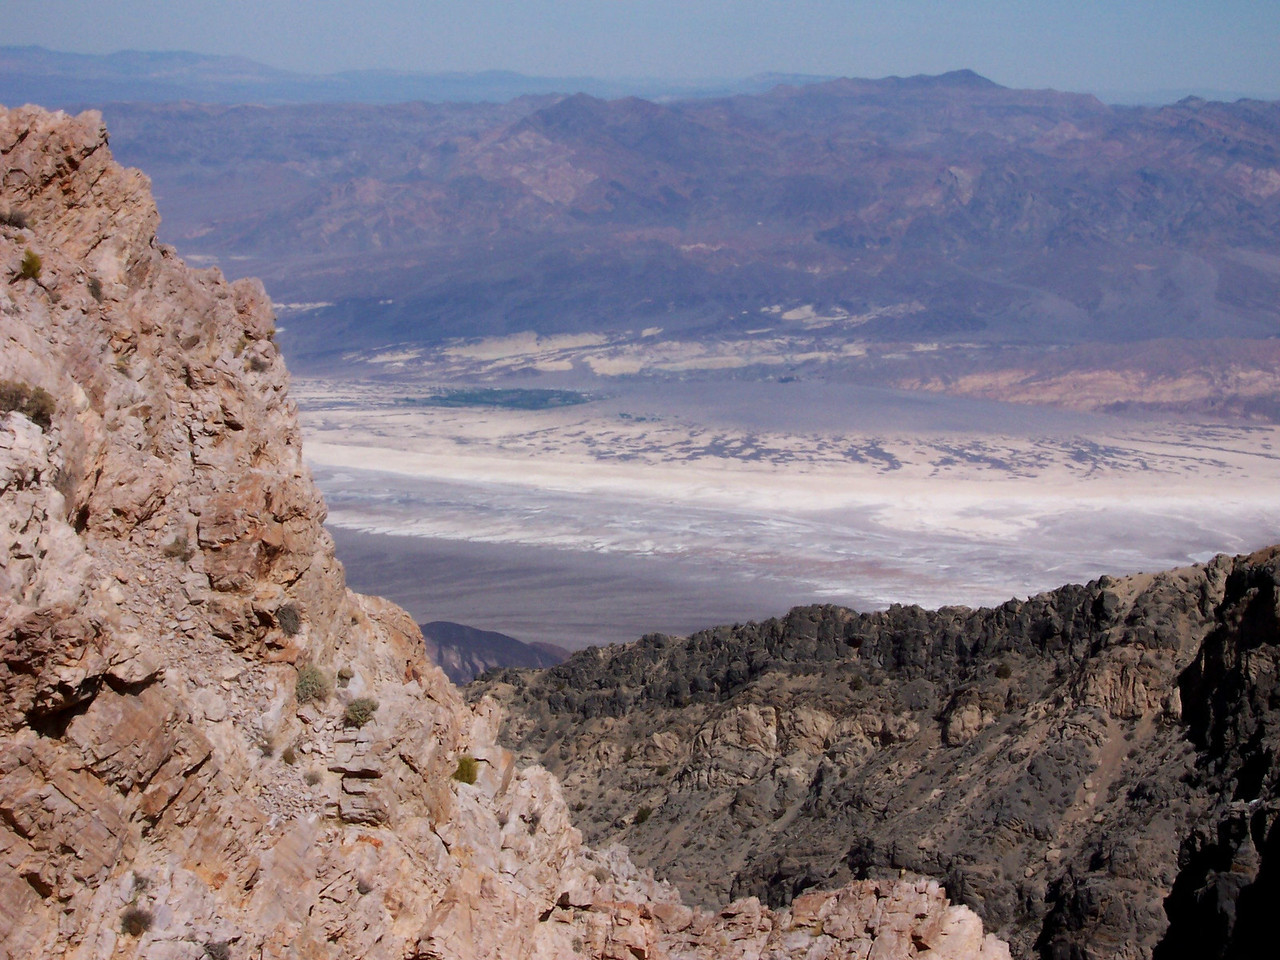 Furnace Creek is the patch of green in the valley below..